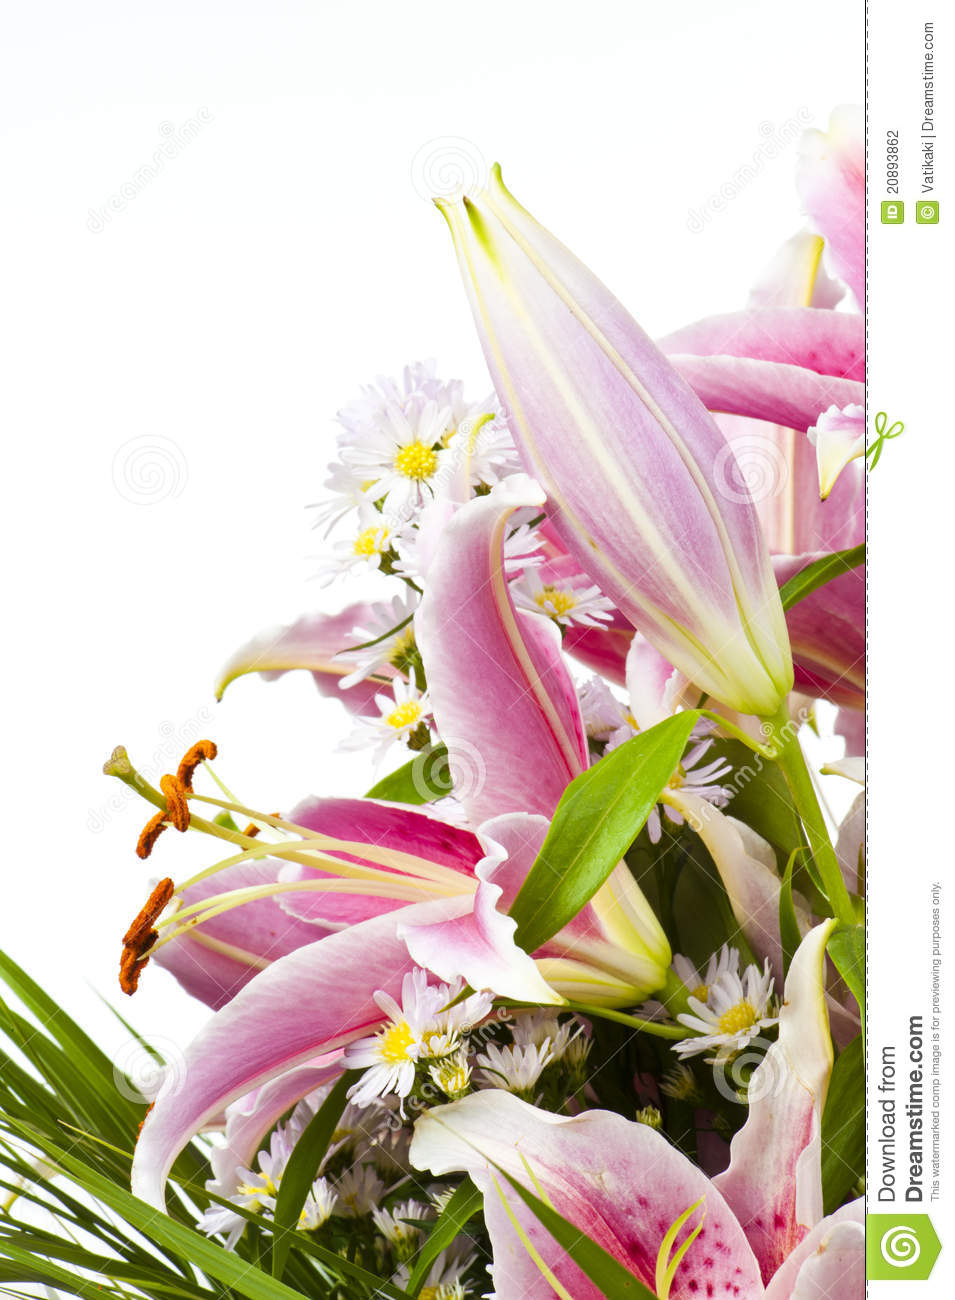 Tiger Lily Flower Arrangement Stock Photo Image Of Pink Beautiful